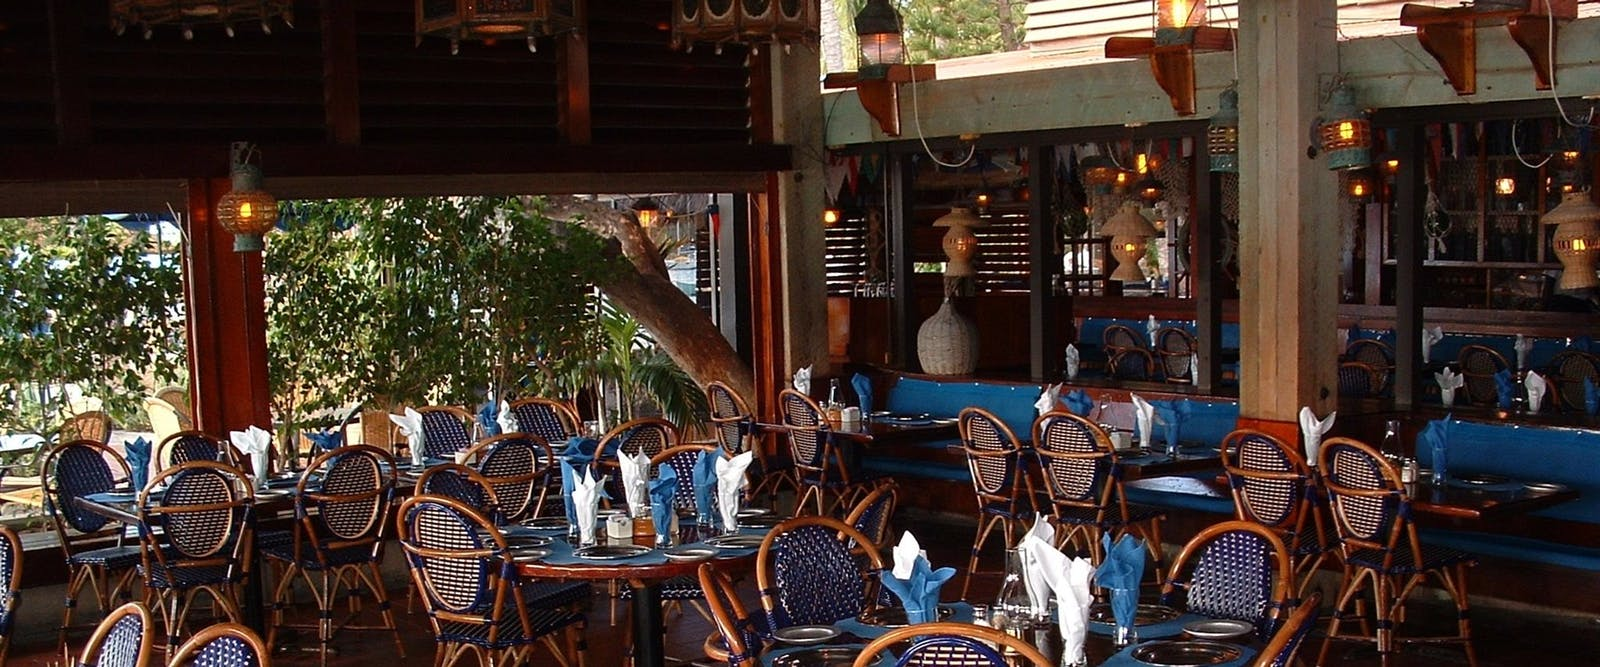 Restaurant at Bitter End Yacht Club, British Virgin Islands